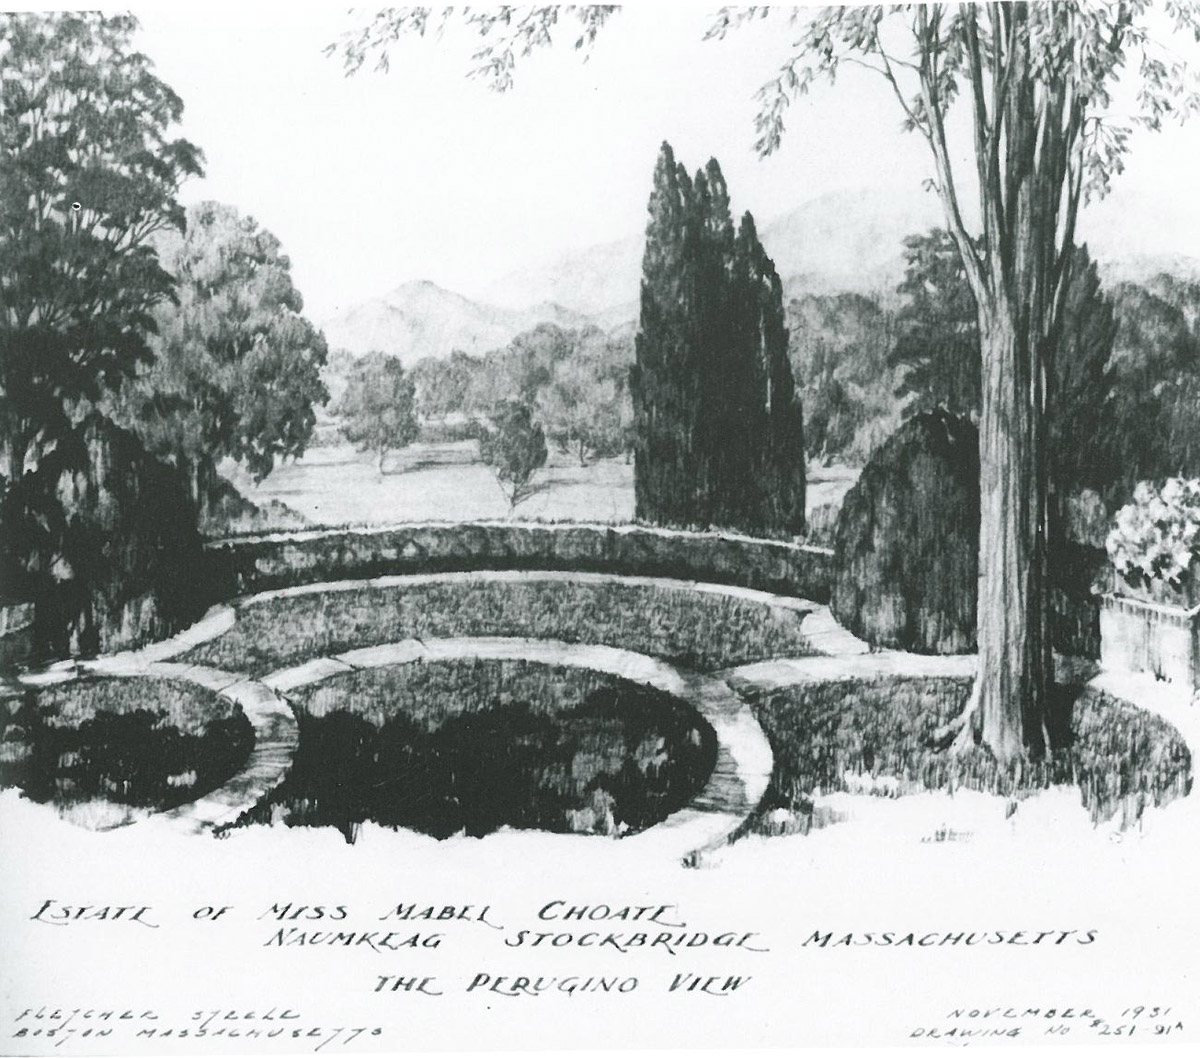 Henry Hoover's drawing of The Perugino View. Image courtesy of FLETCHER STEELE, LANDSCAPE ARCHITECT, by Robin Karson.